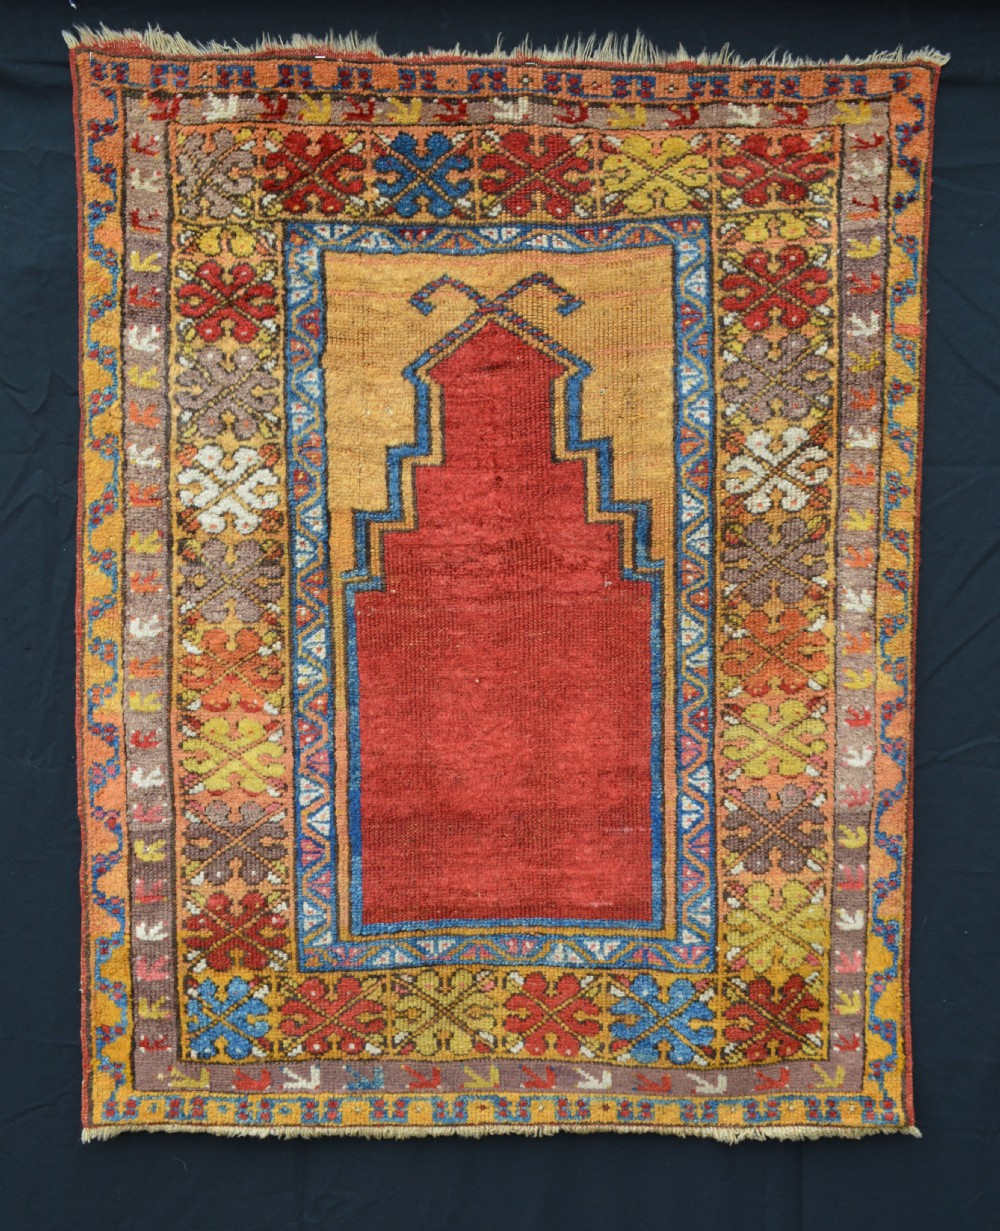 prayer rug possibly aksaray region central anatolia